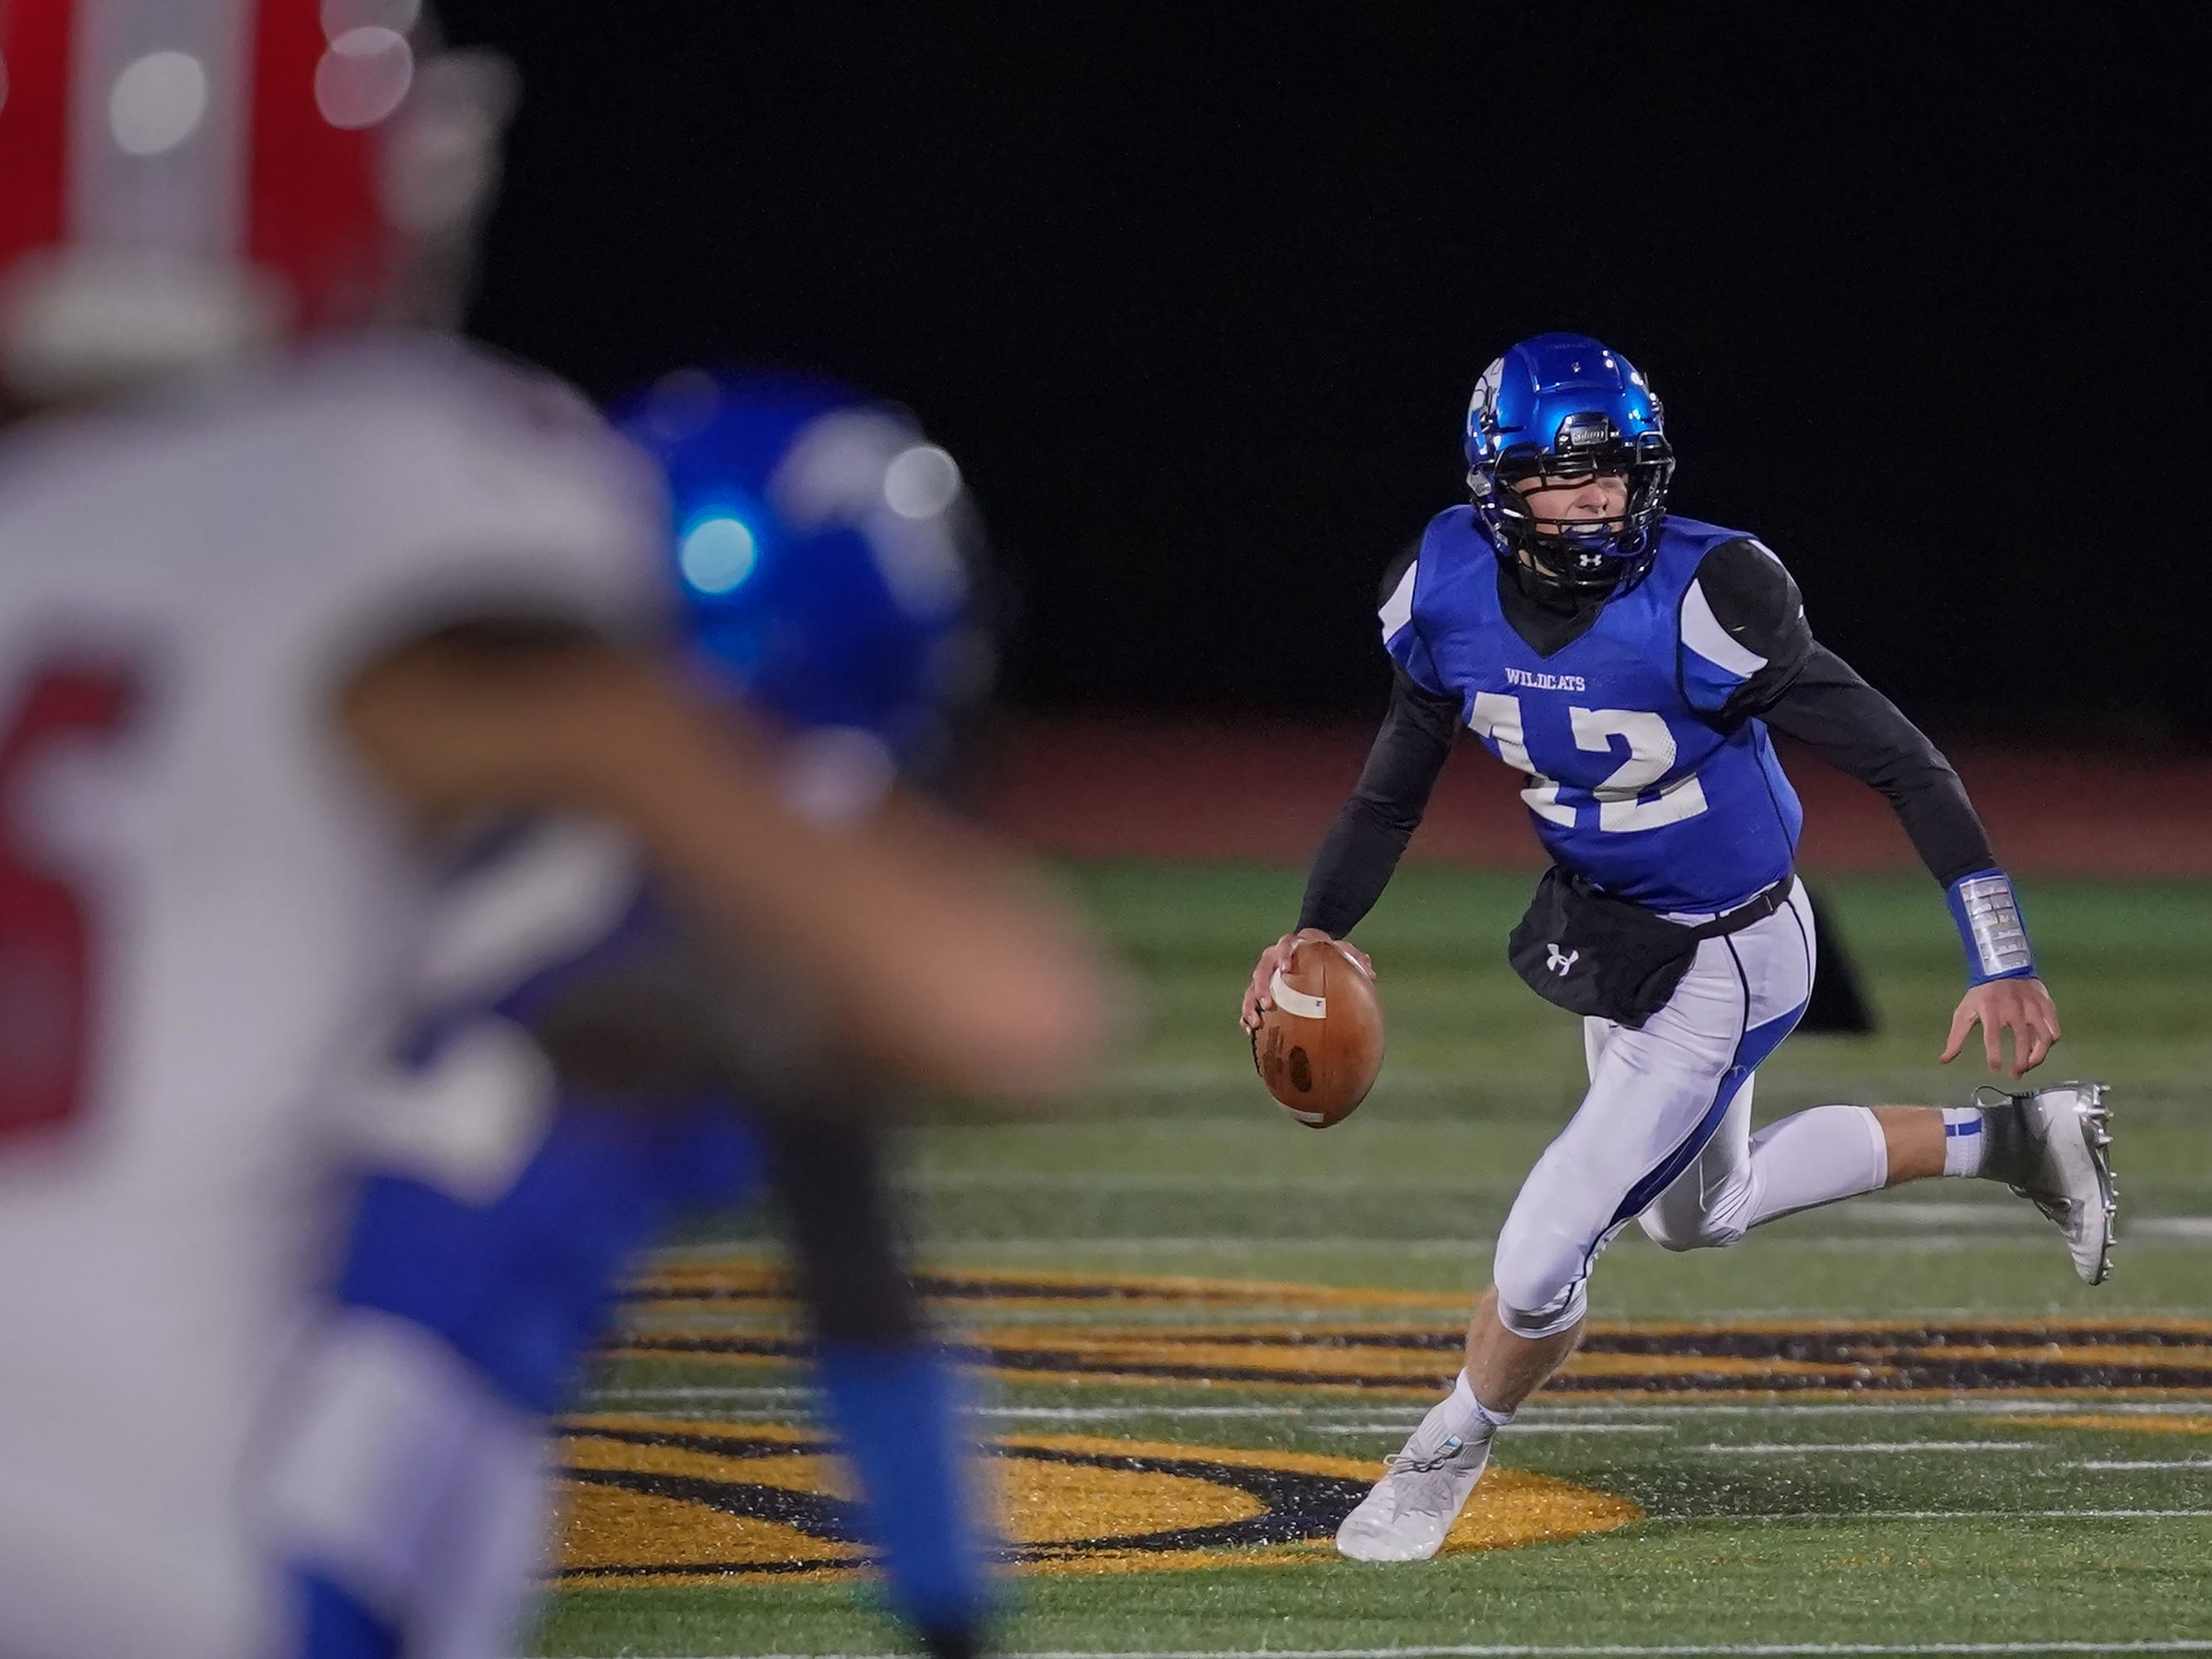 Oshkosh West quarterback Jake Ketter (12) rolls out to pass. The Oshkosh West Wildcats hosted the Neenah Rockets in an FVA-South conference matchup Friday evening, October 12, 2018 at J. J. Keller Field at Titan Stadium.